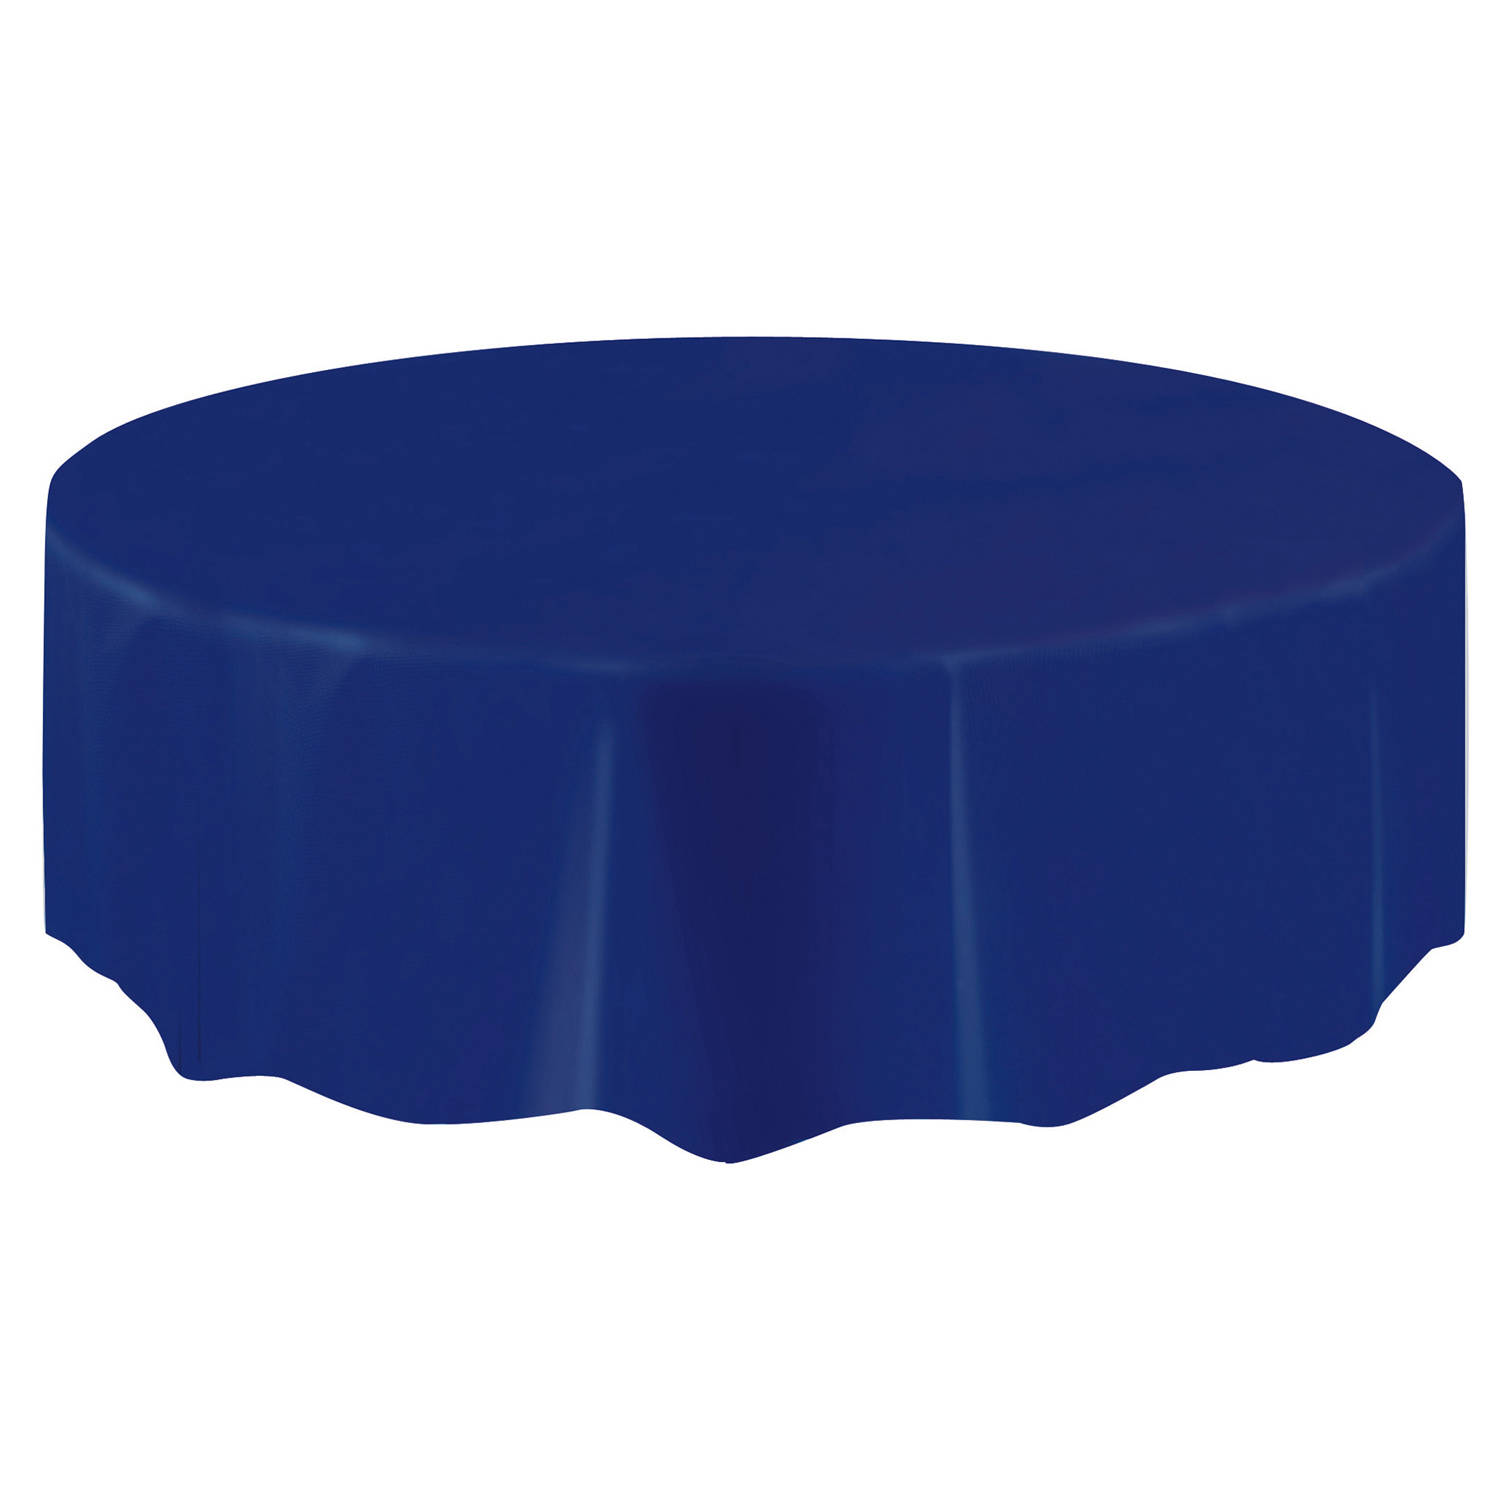 Plastic Round Tablecloth, 84 In, Navy Blue, 1ct